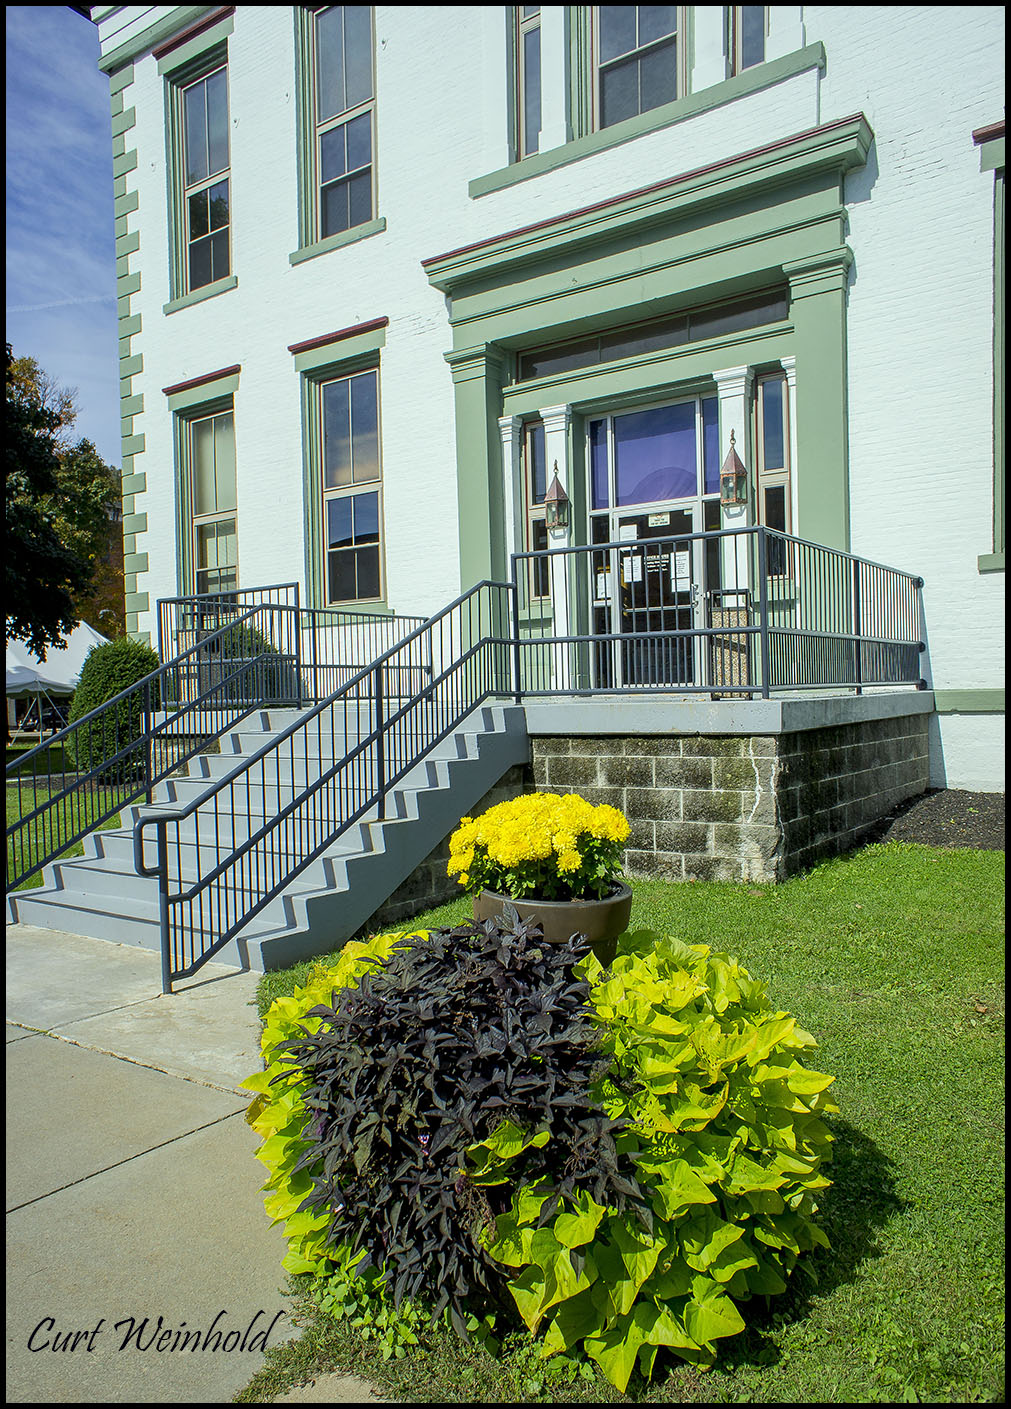 Peachy Potter County Courthouse Coudersport Pa Photo Curt Download Free Architecture Designs Rallybritishbridgeorg